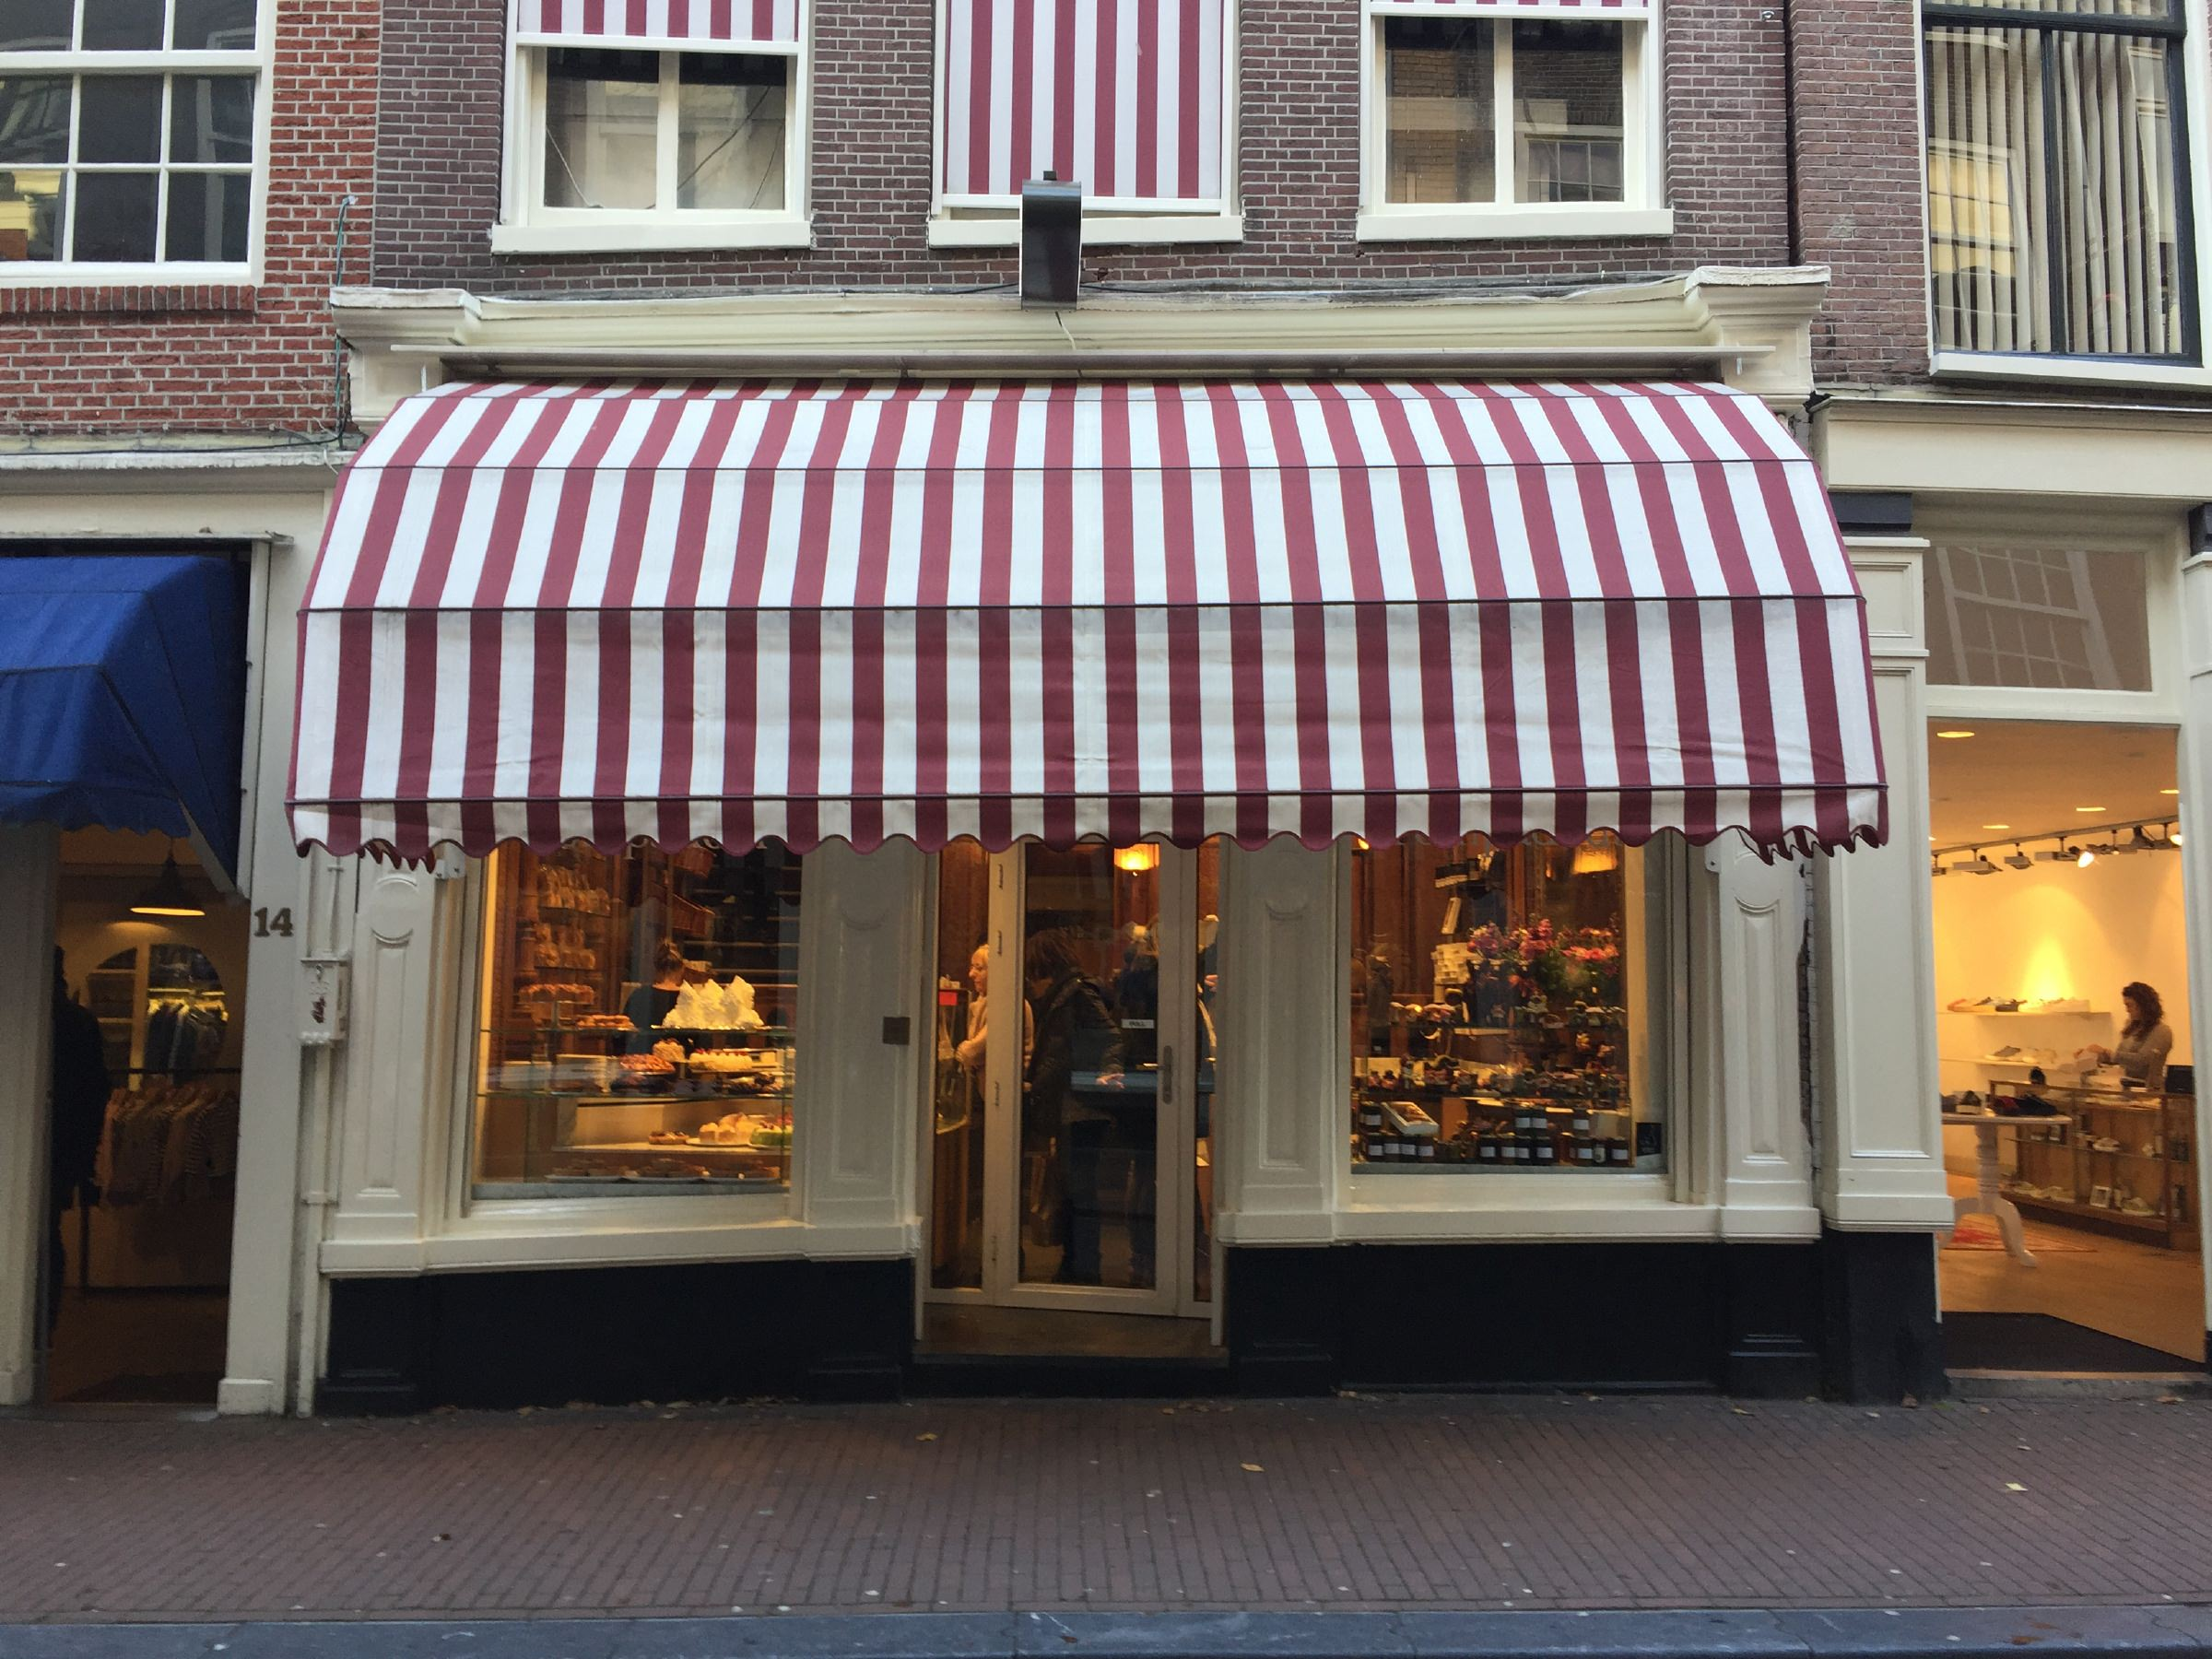 Patisserie Pompadour | Top 5 Places for a Hot Chocolate in Amsterdam | Clink Hostels